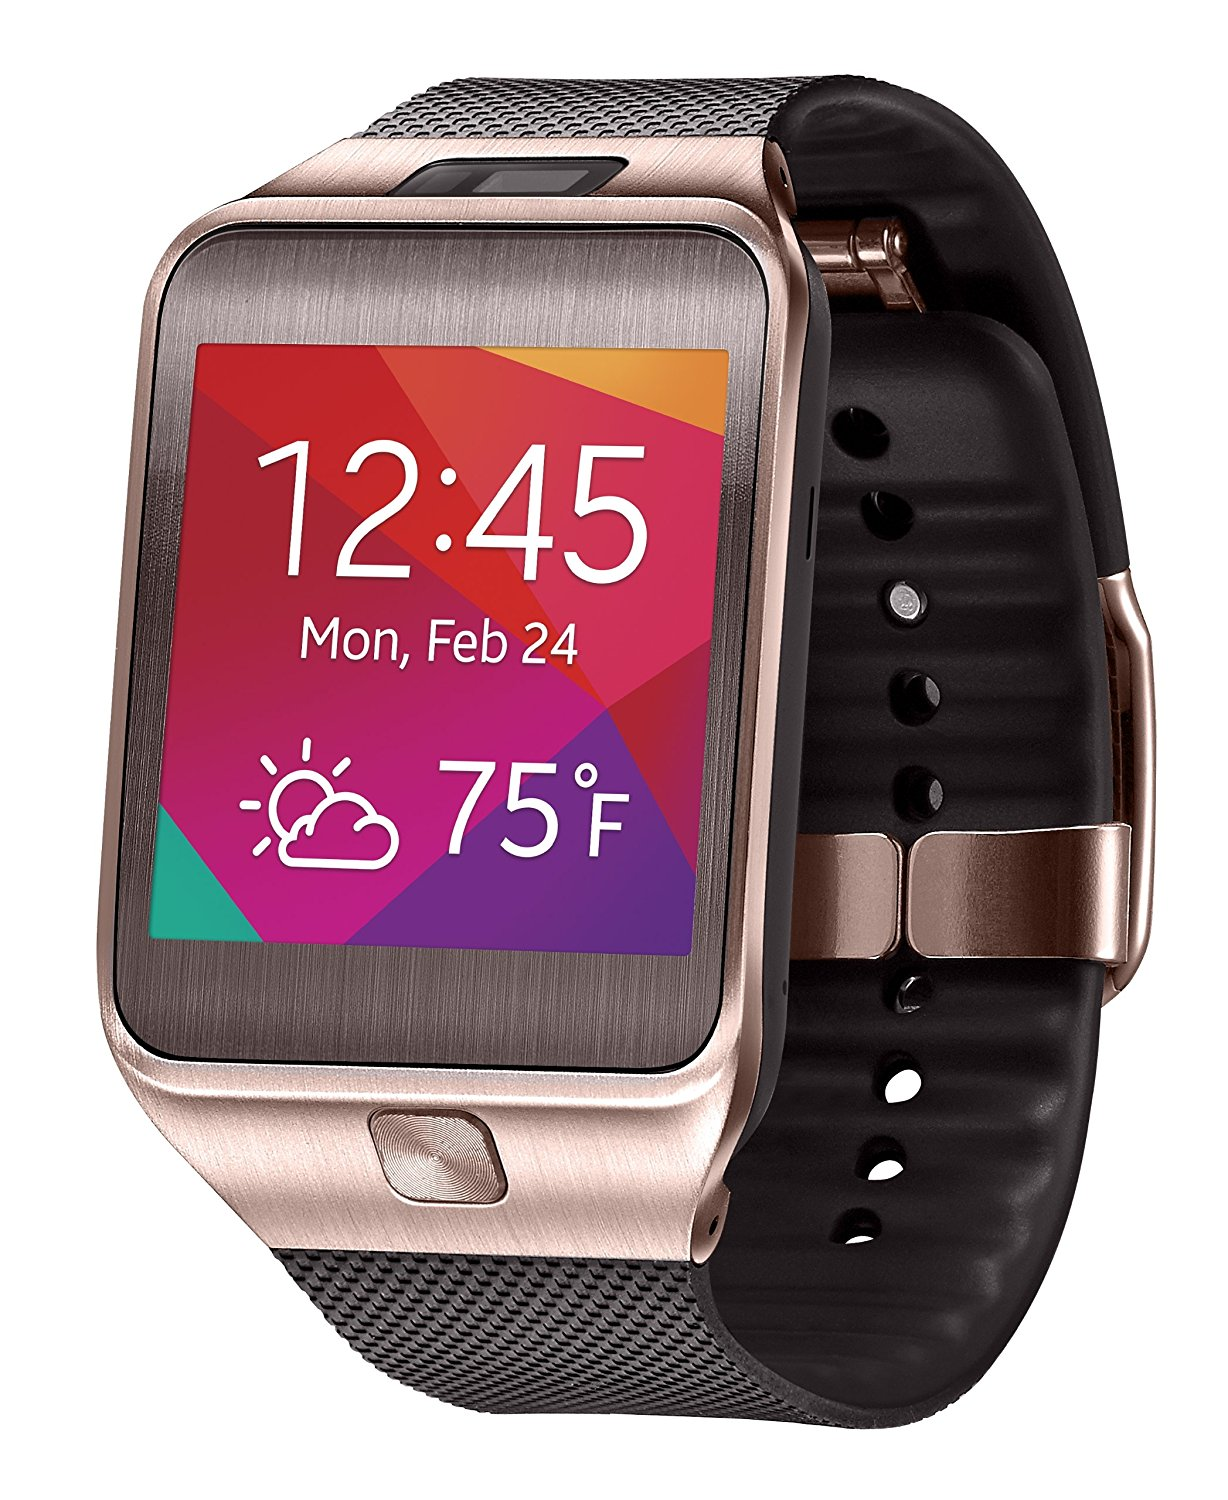 Samsung Gear 2 R380 SmartWatch for sale in Jamaica ...